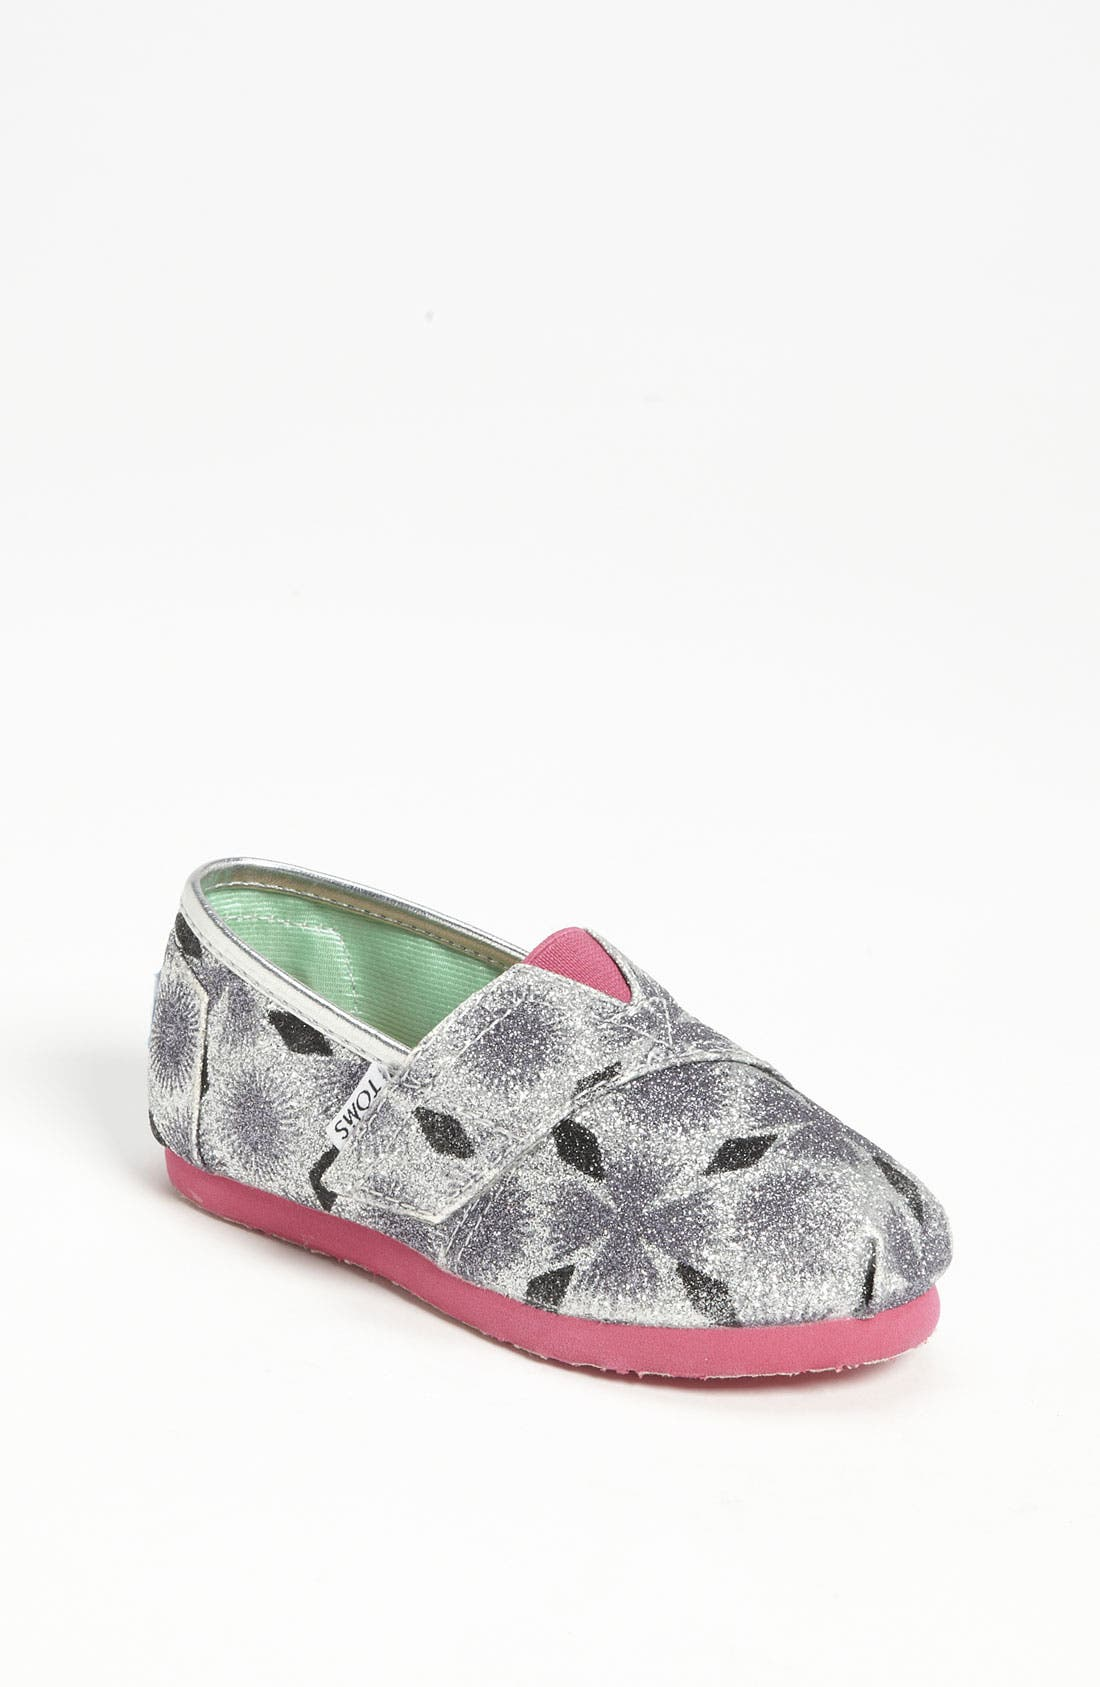 Main Image - TOMS 'Classic Tiny - Starburst' Slip-On (Baby, Walker & Toddler) (Nordstrom Exclusive)